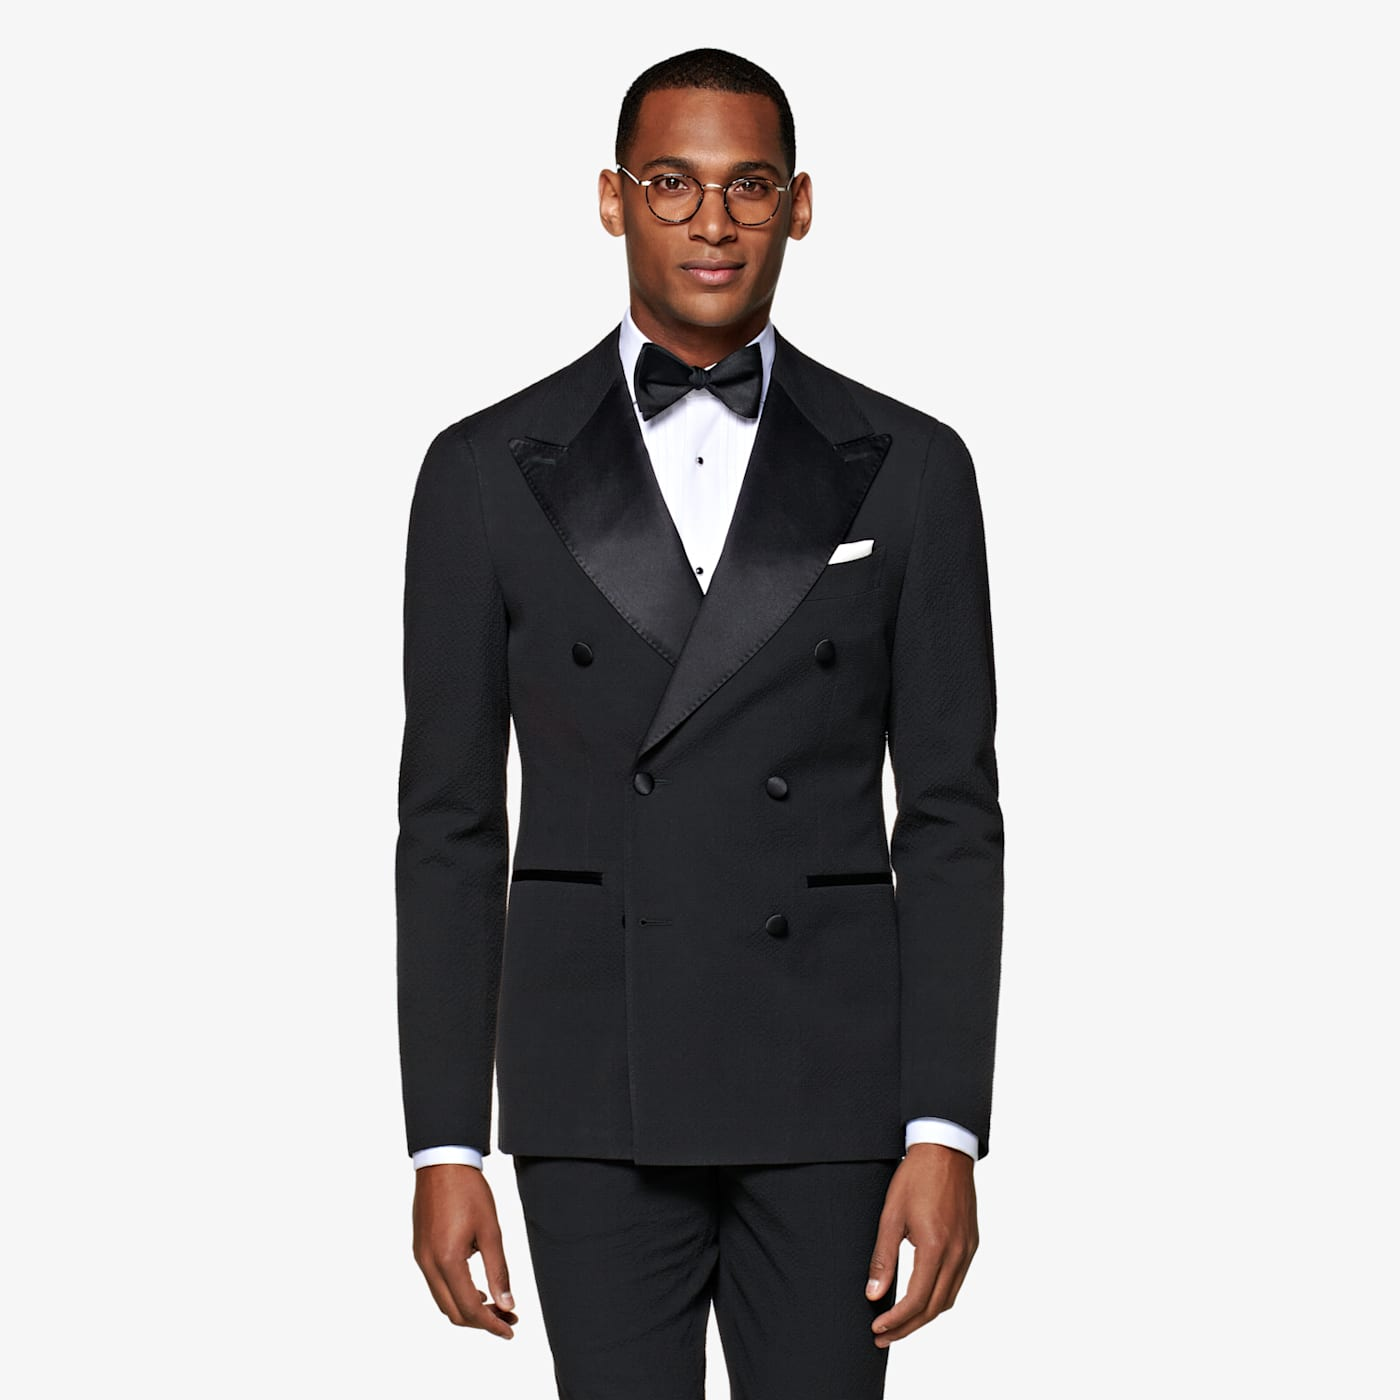 Edwardian Titanic Men's Formal Tuxedo Guide Black Havana Tuxedo Suit $599.00 AT vintagedancer.com